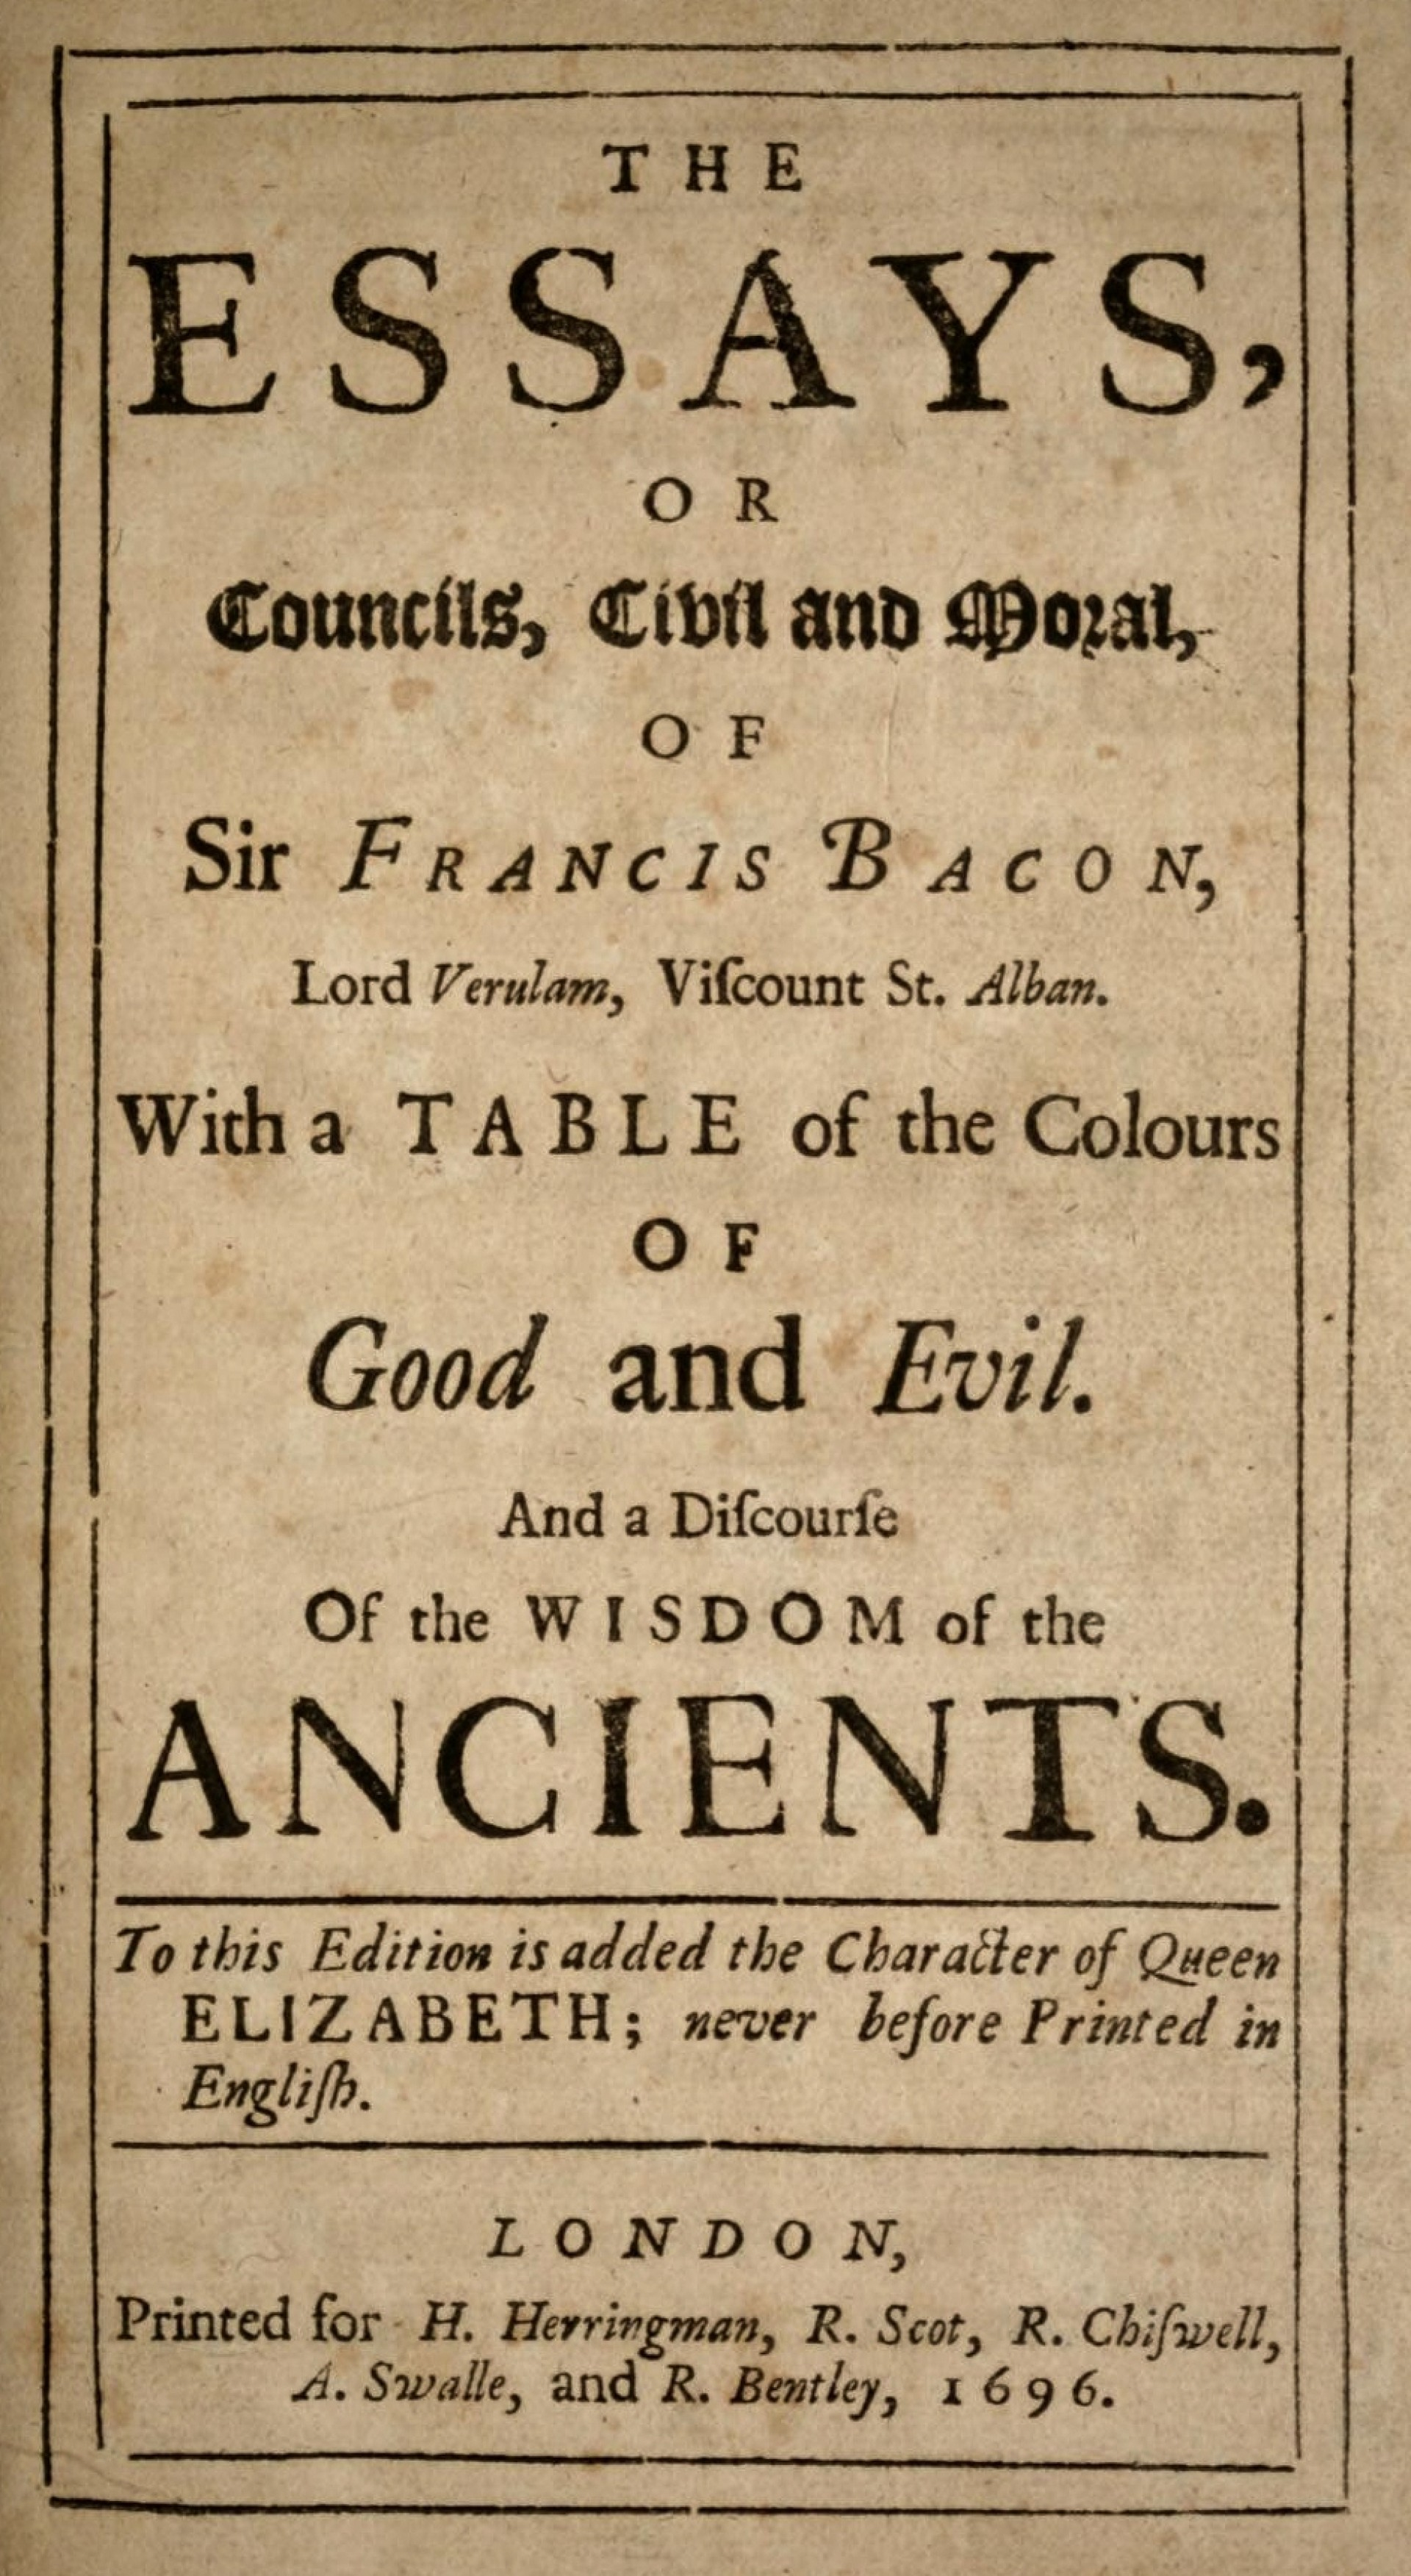 001 Bacons Essays Bacon 1696 Essay Amazing Francis Pdf Free Download Bacon's Of Truth Summary 1920